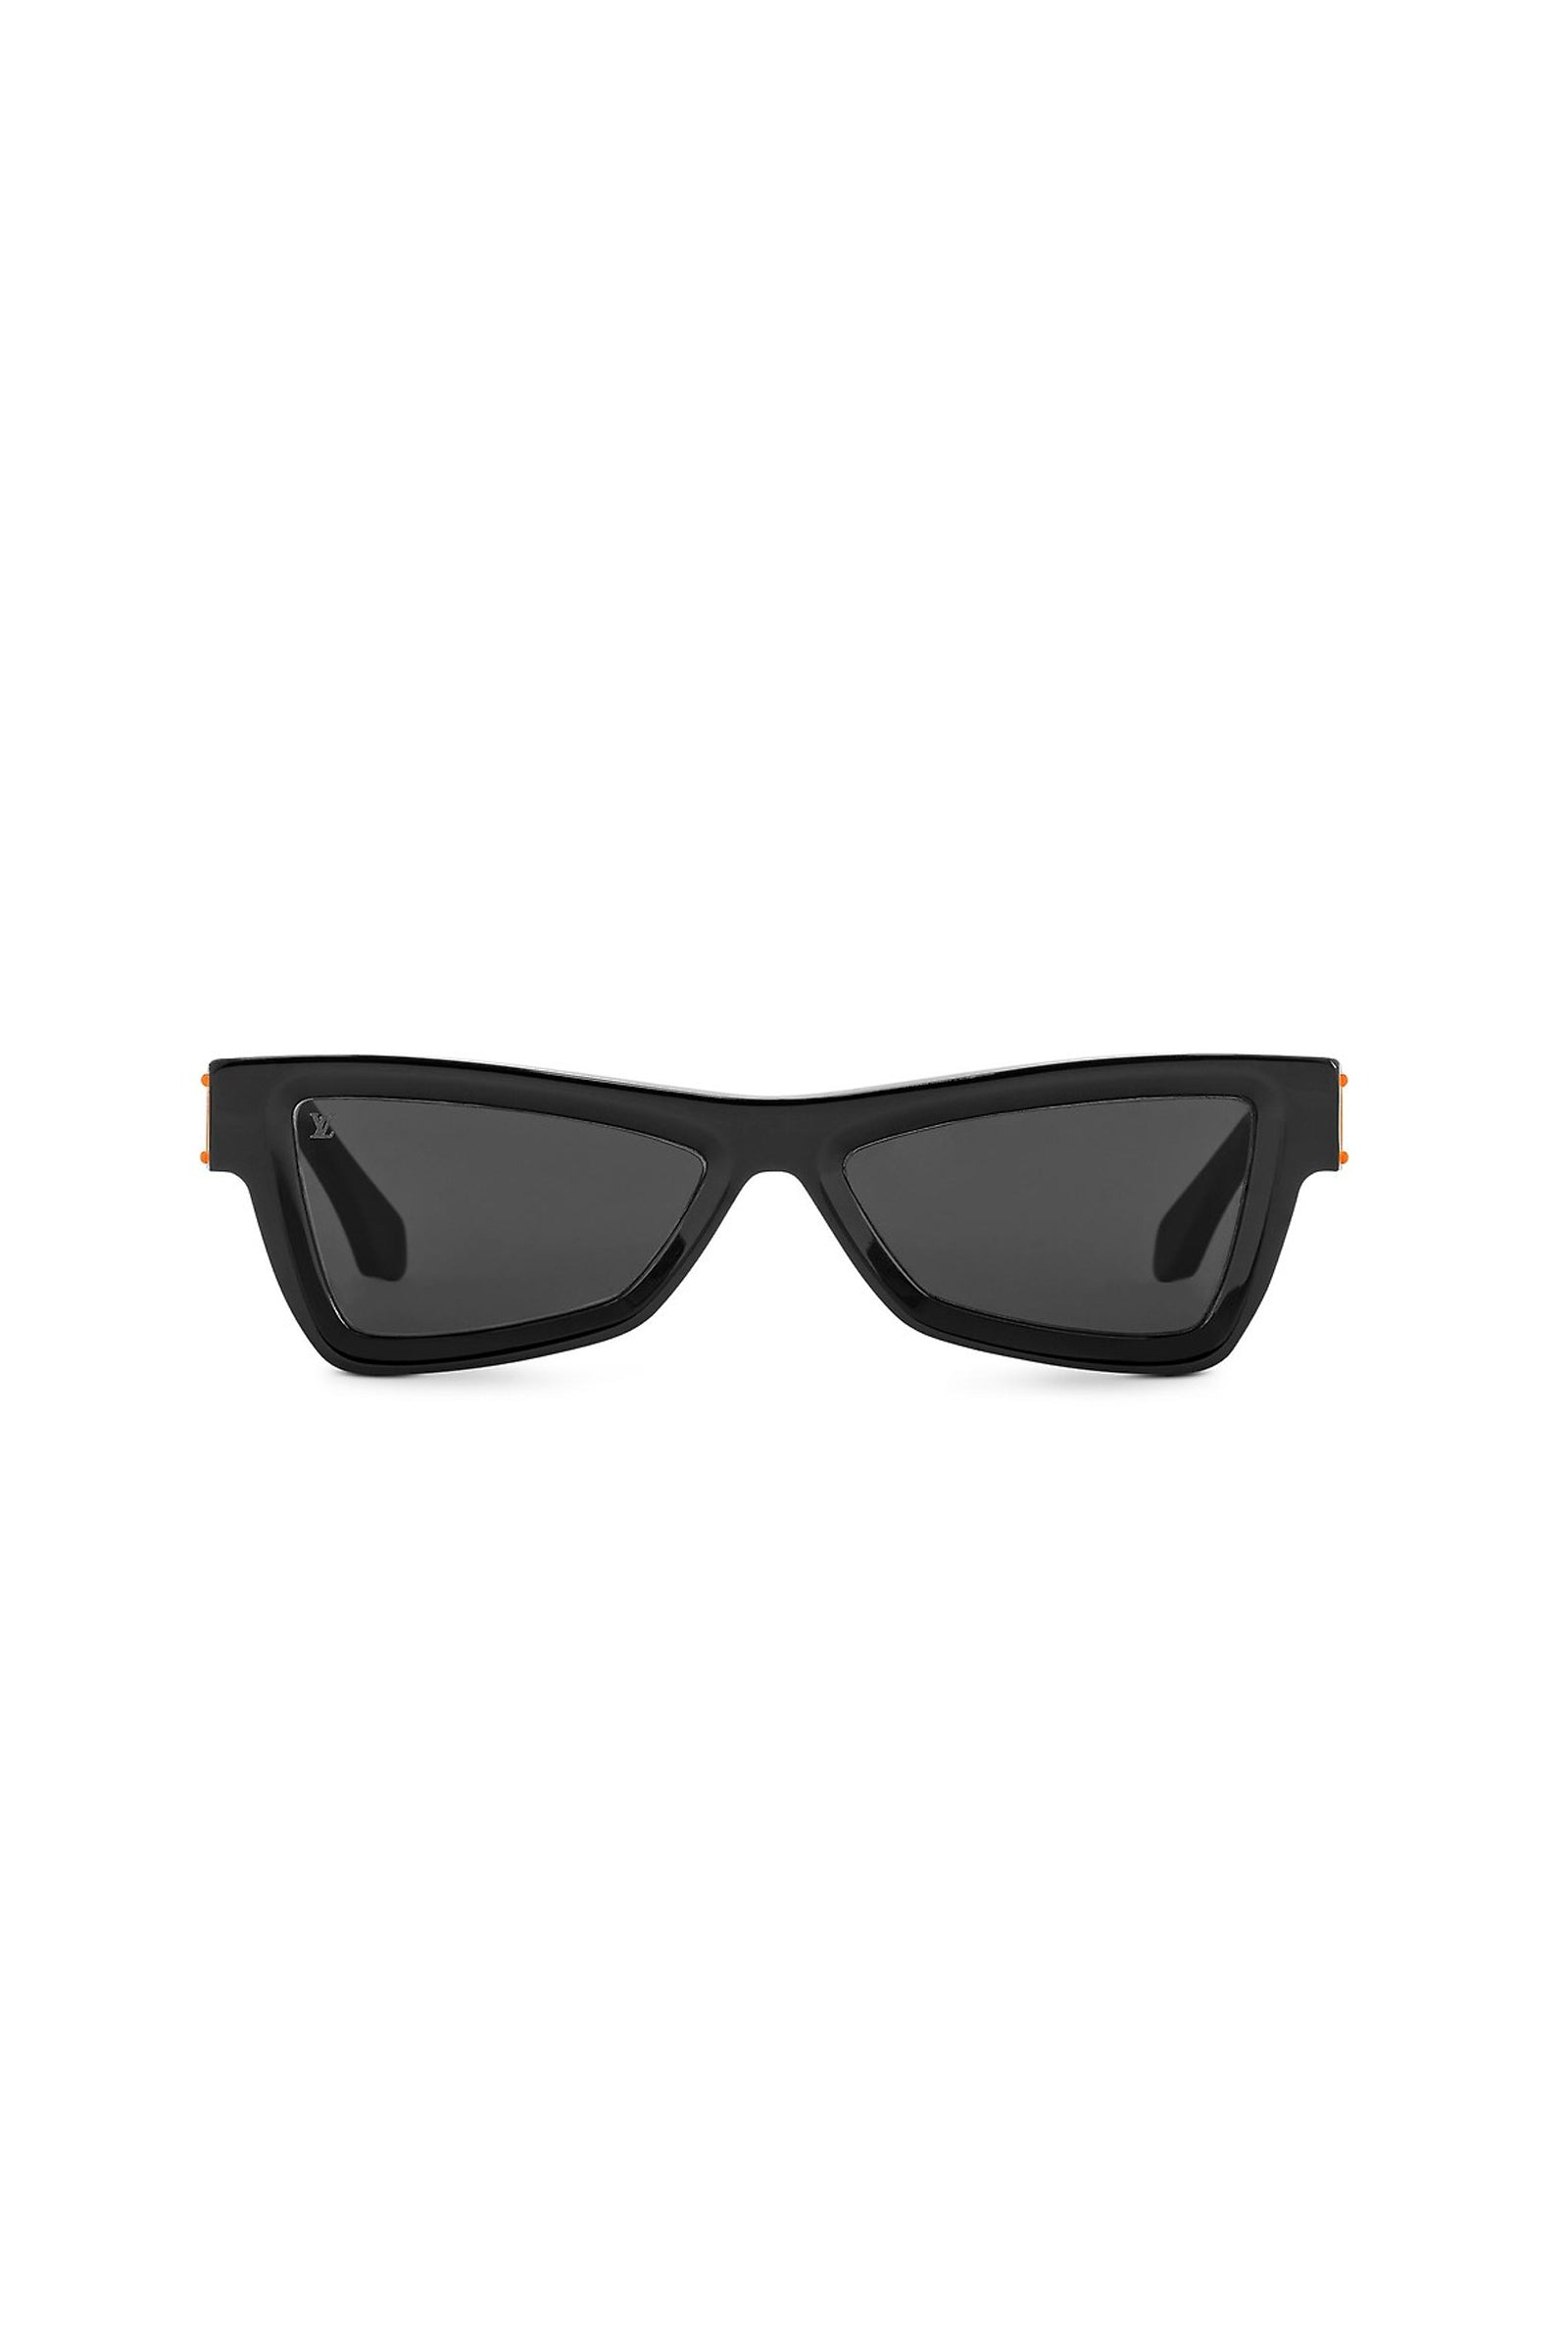 Louis Vuitton SKEPTICALS SUNGLASSES